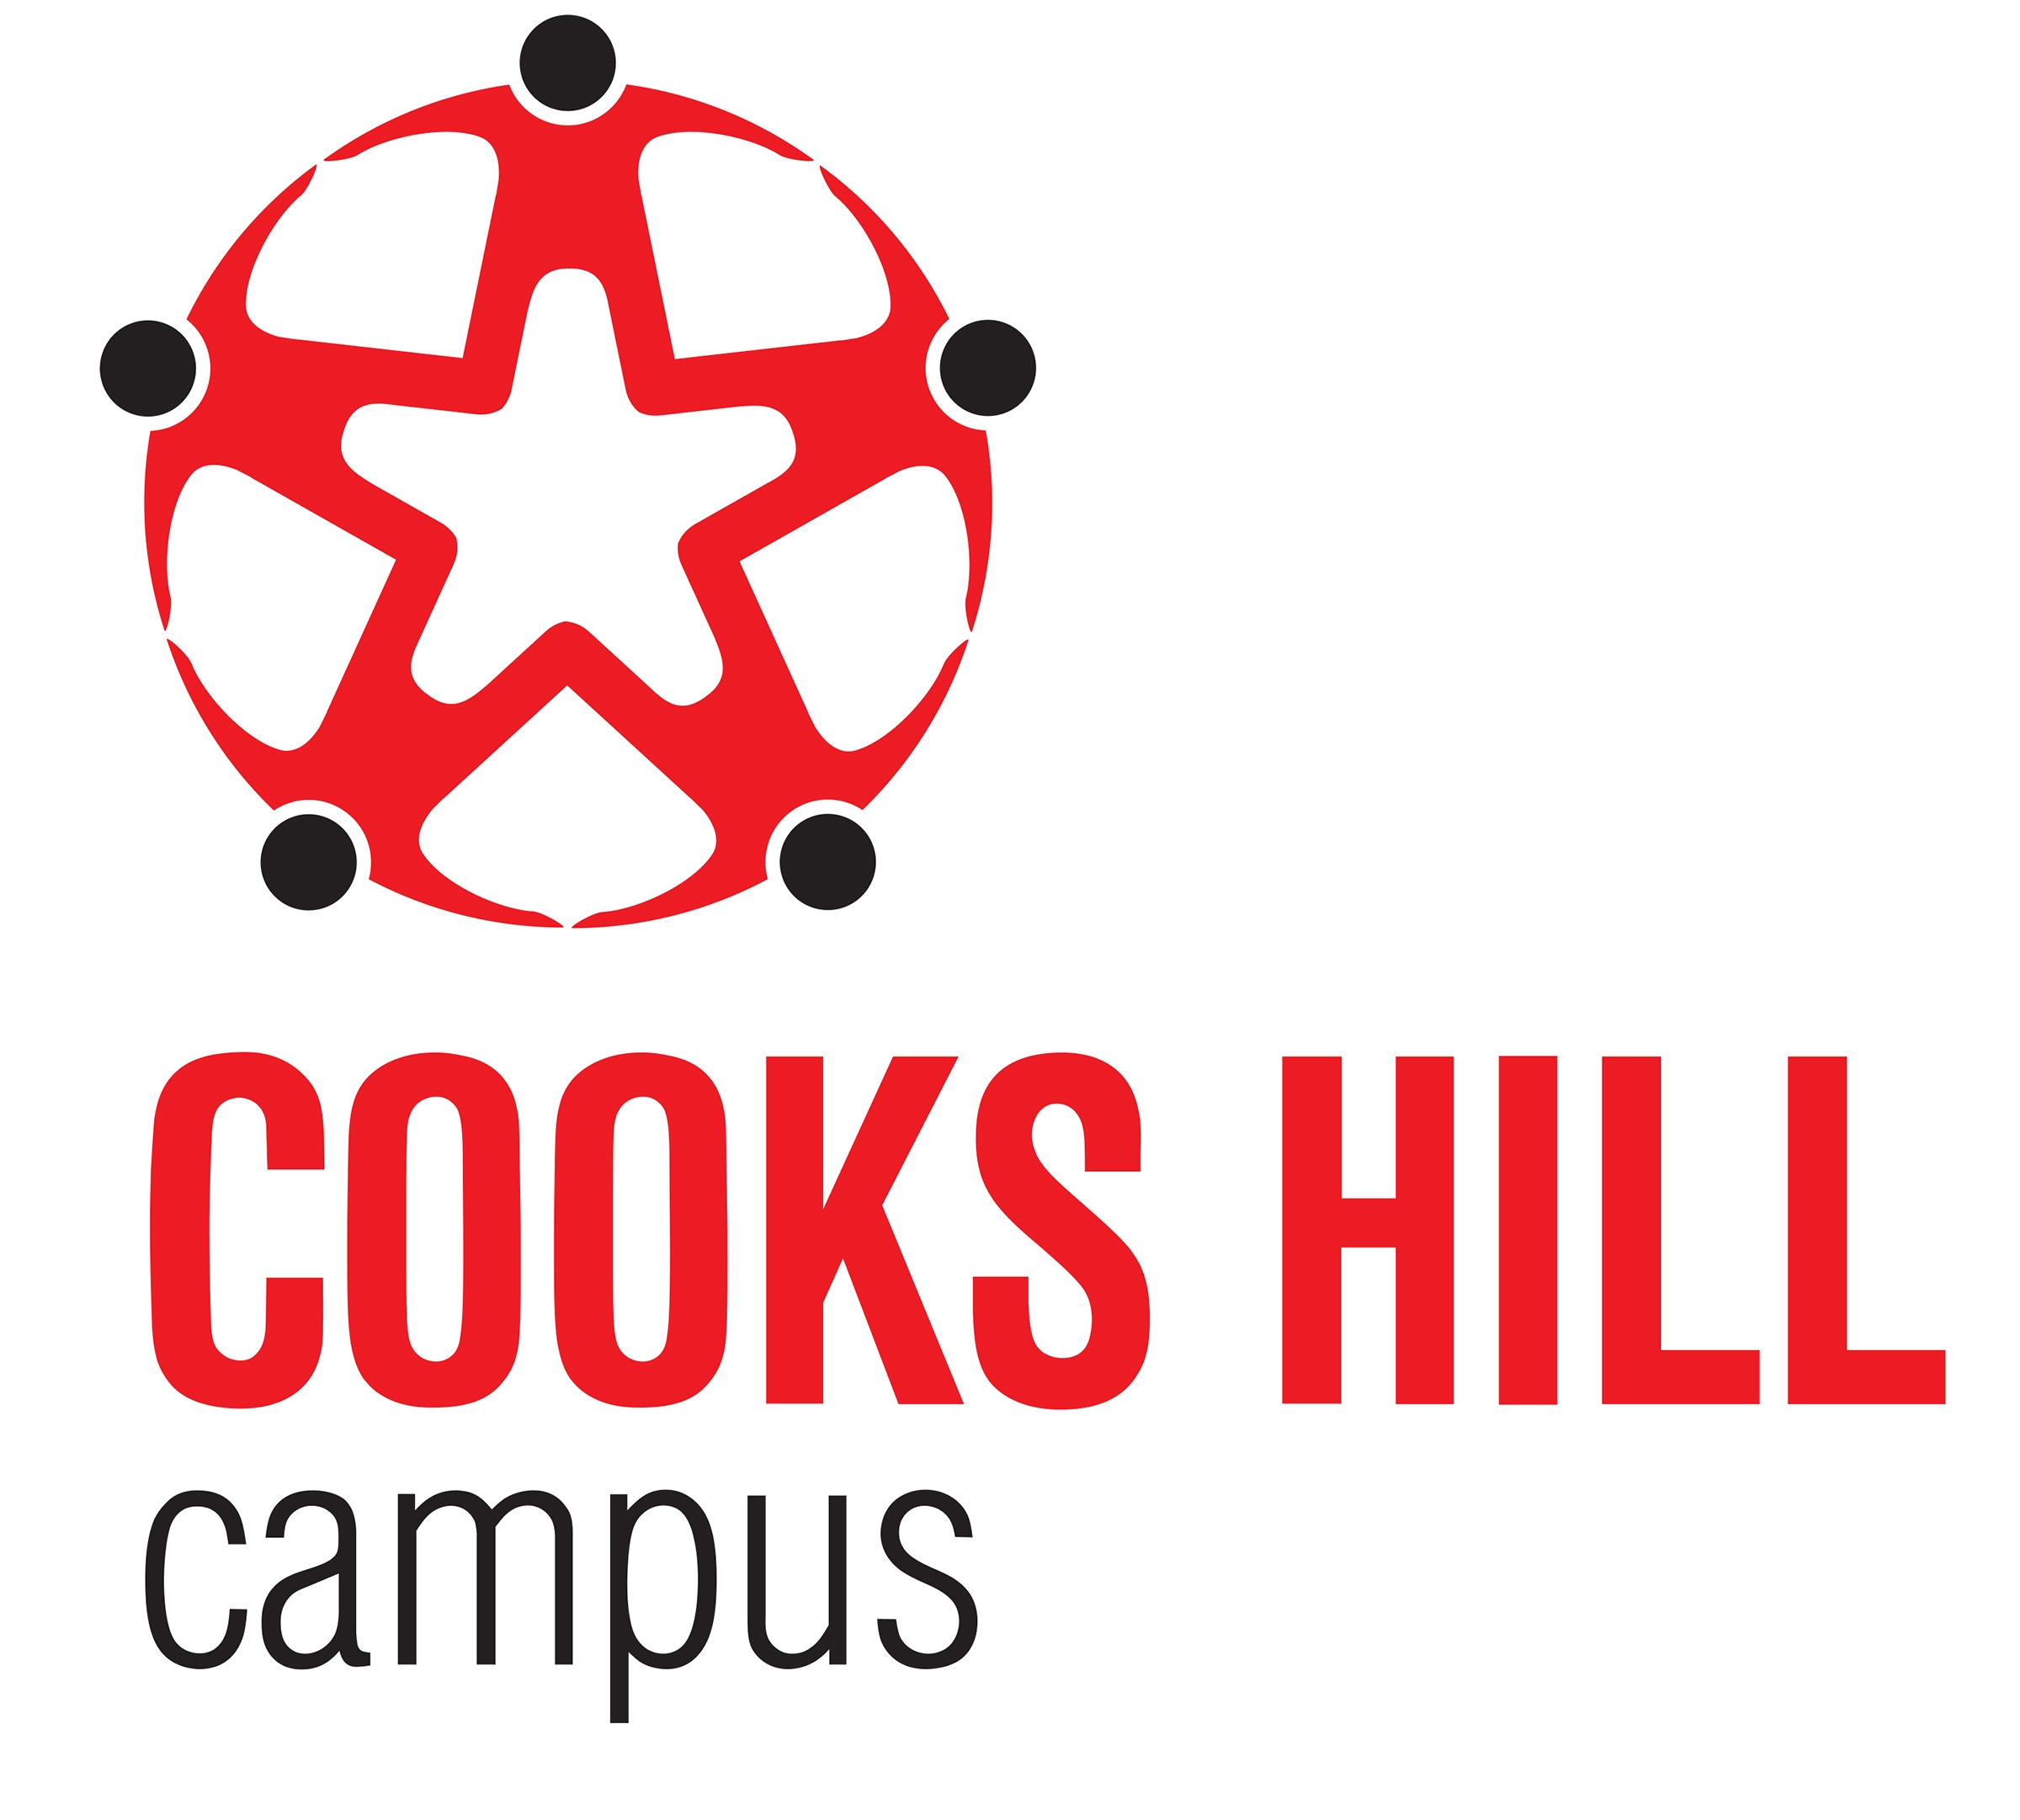 Cooks Hill Campus logo